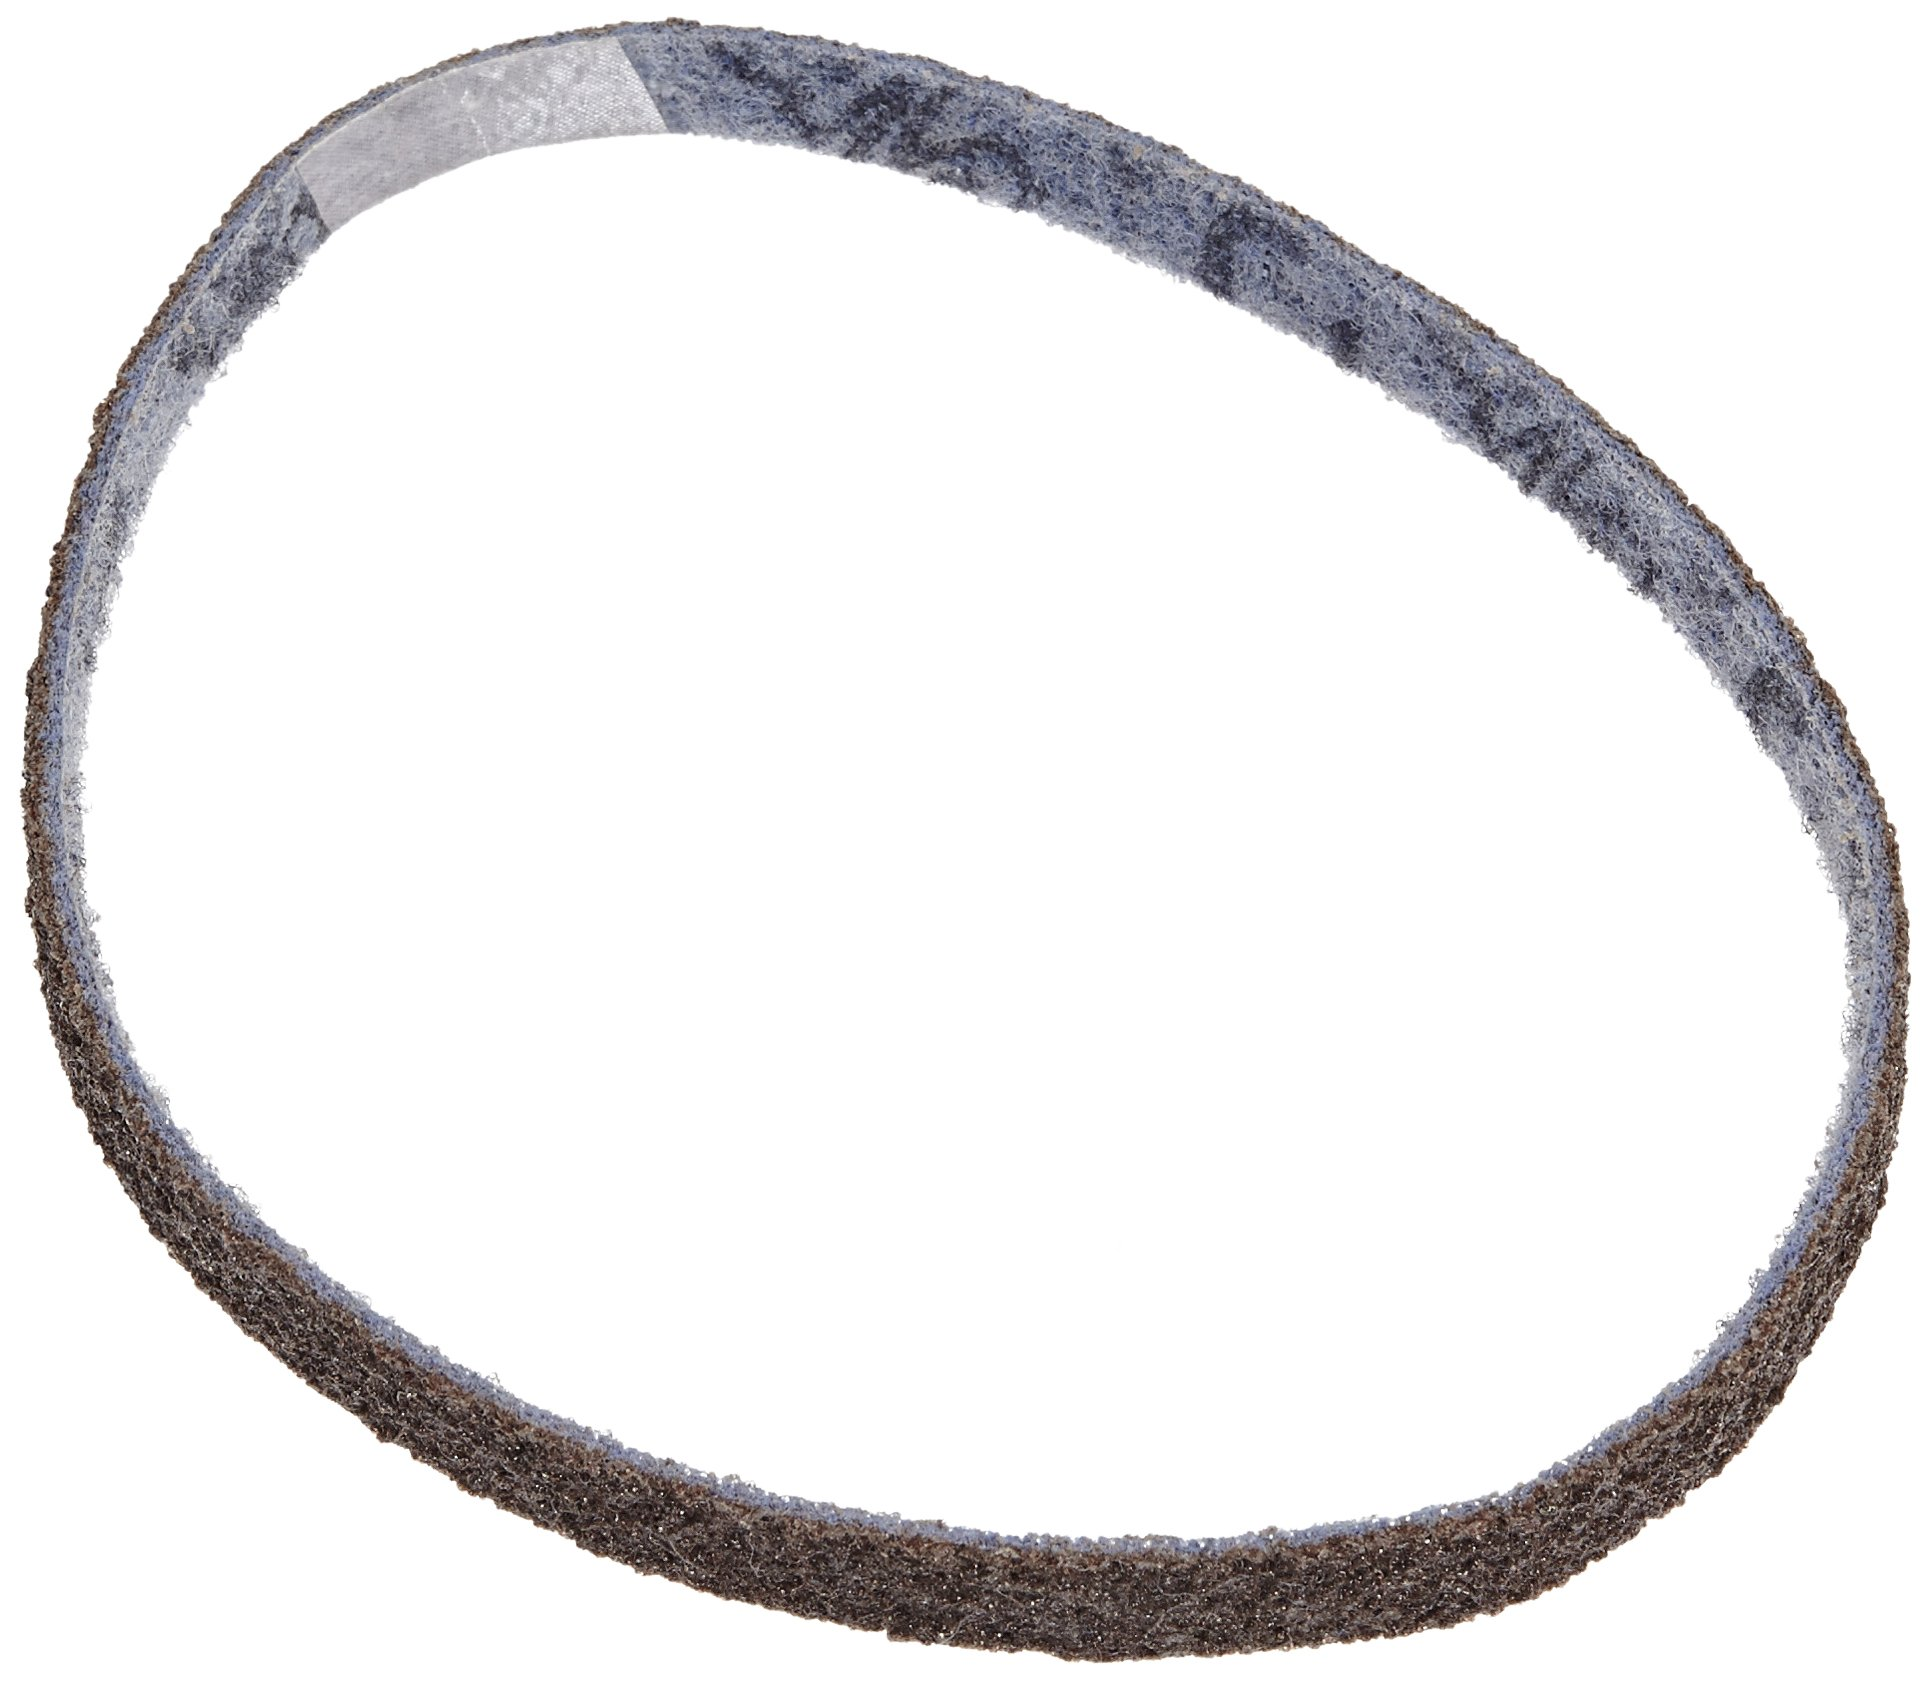 Scotch-Brite(TM) SE Surface Conditioning Belt, 1/2 in x 24 in A CRS, 20 Belts